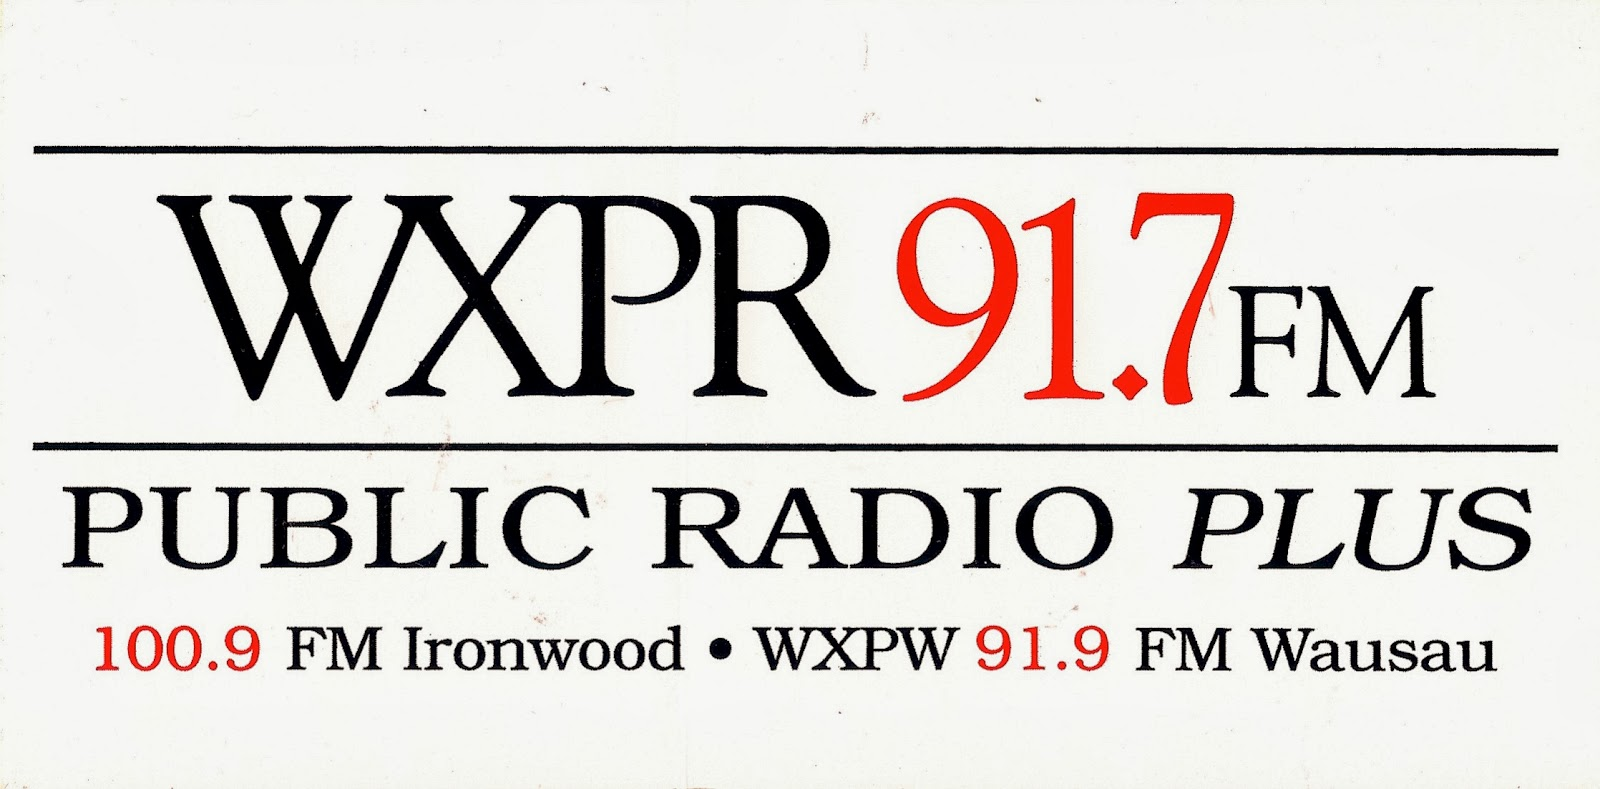 Radio Sticker Of The Day Wxpr